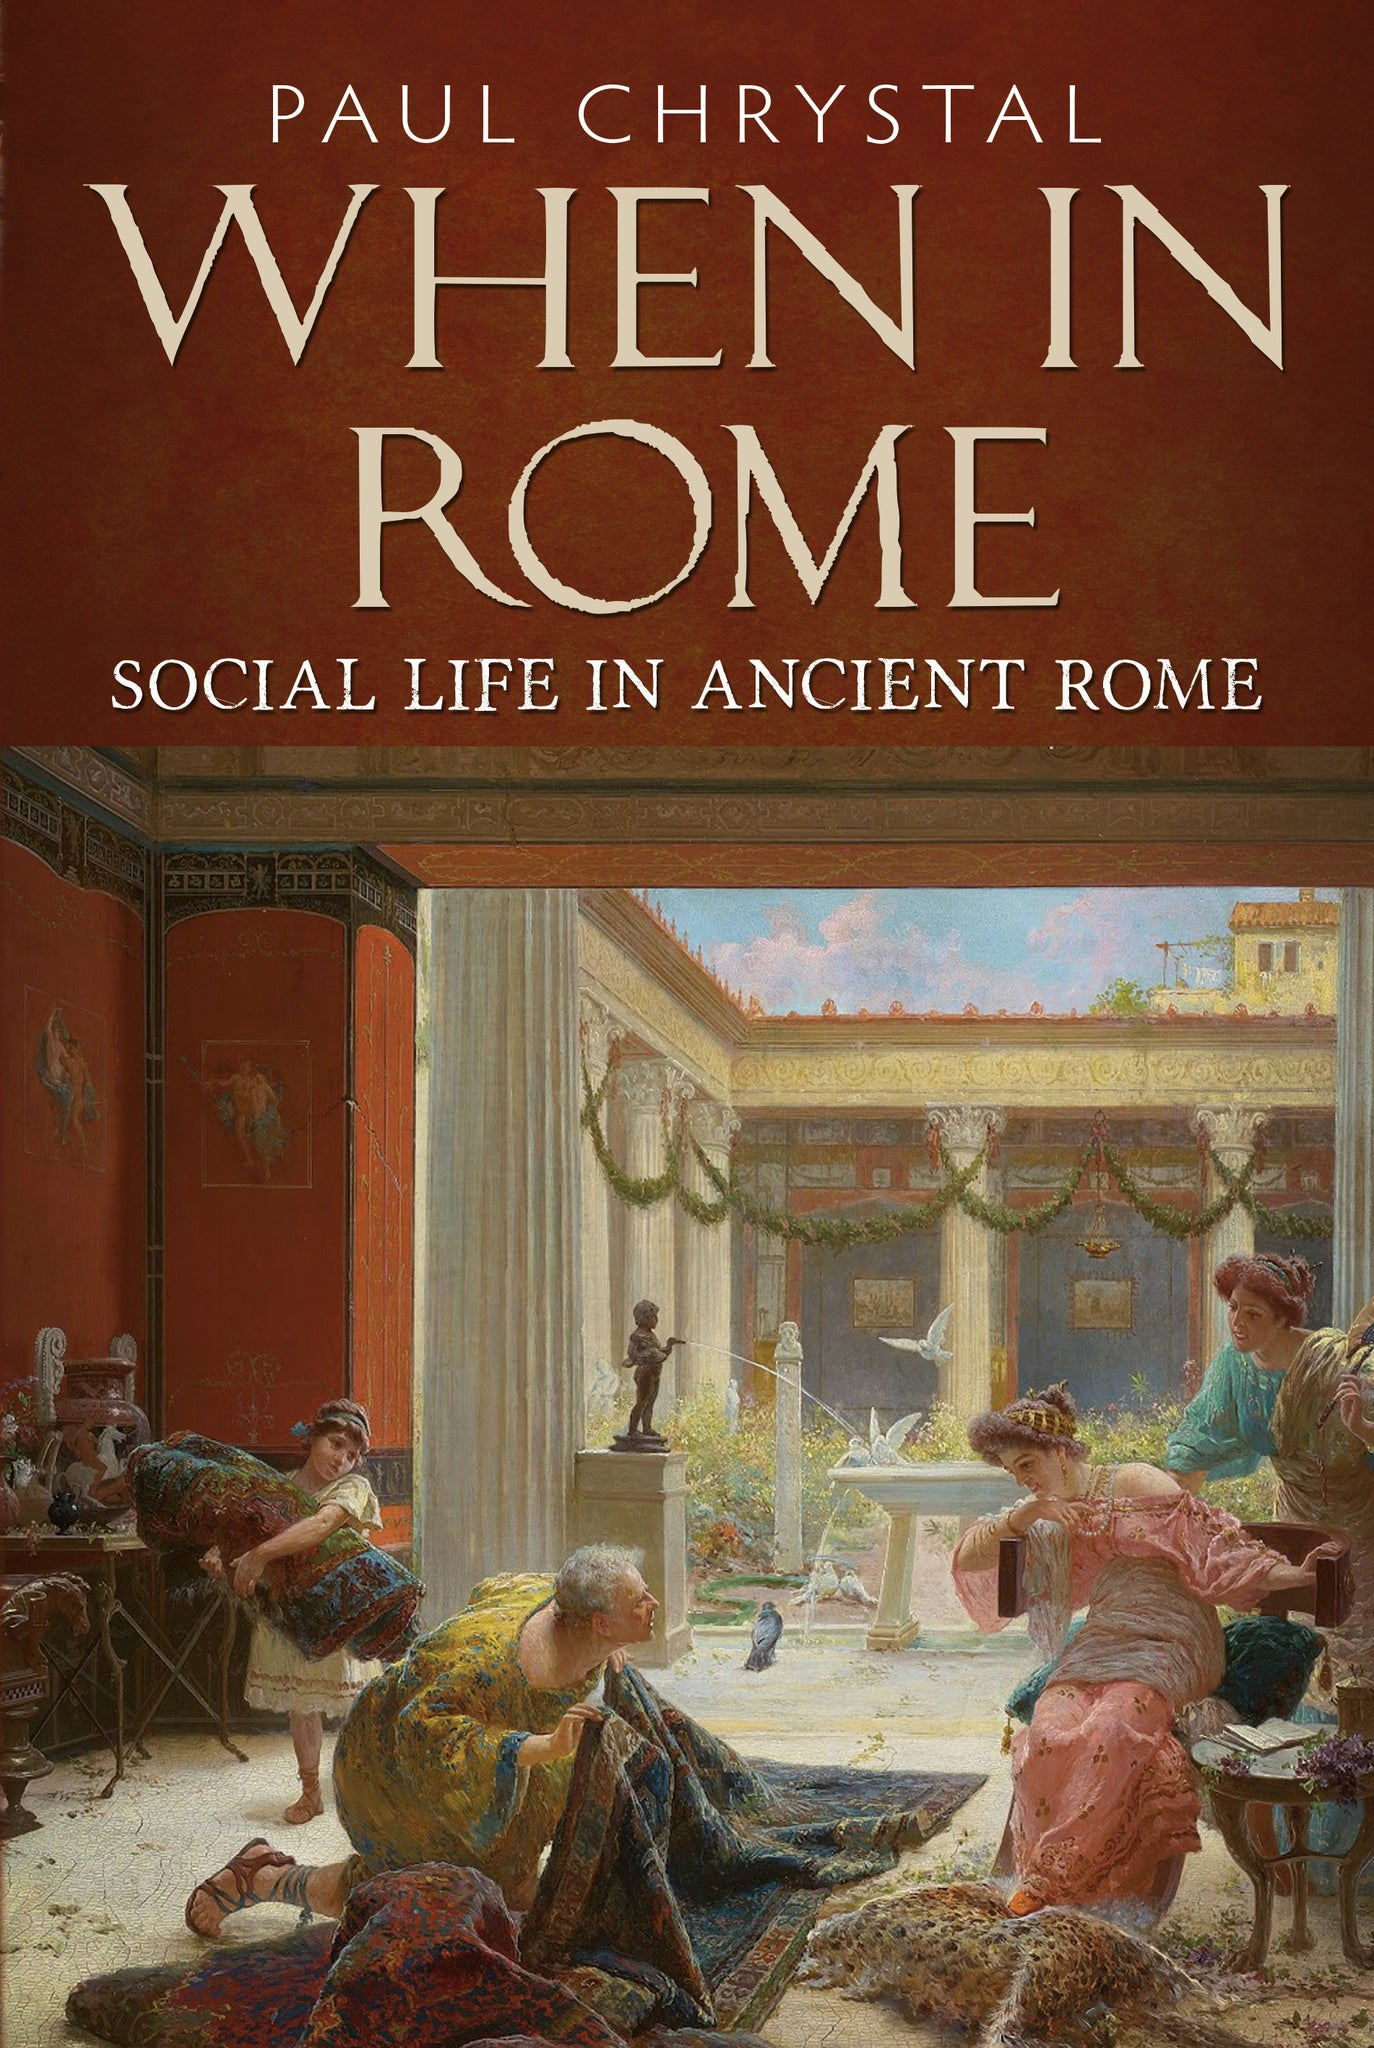 When in Rome: Social Life in Ancient Rome